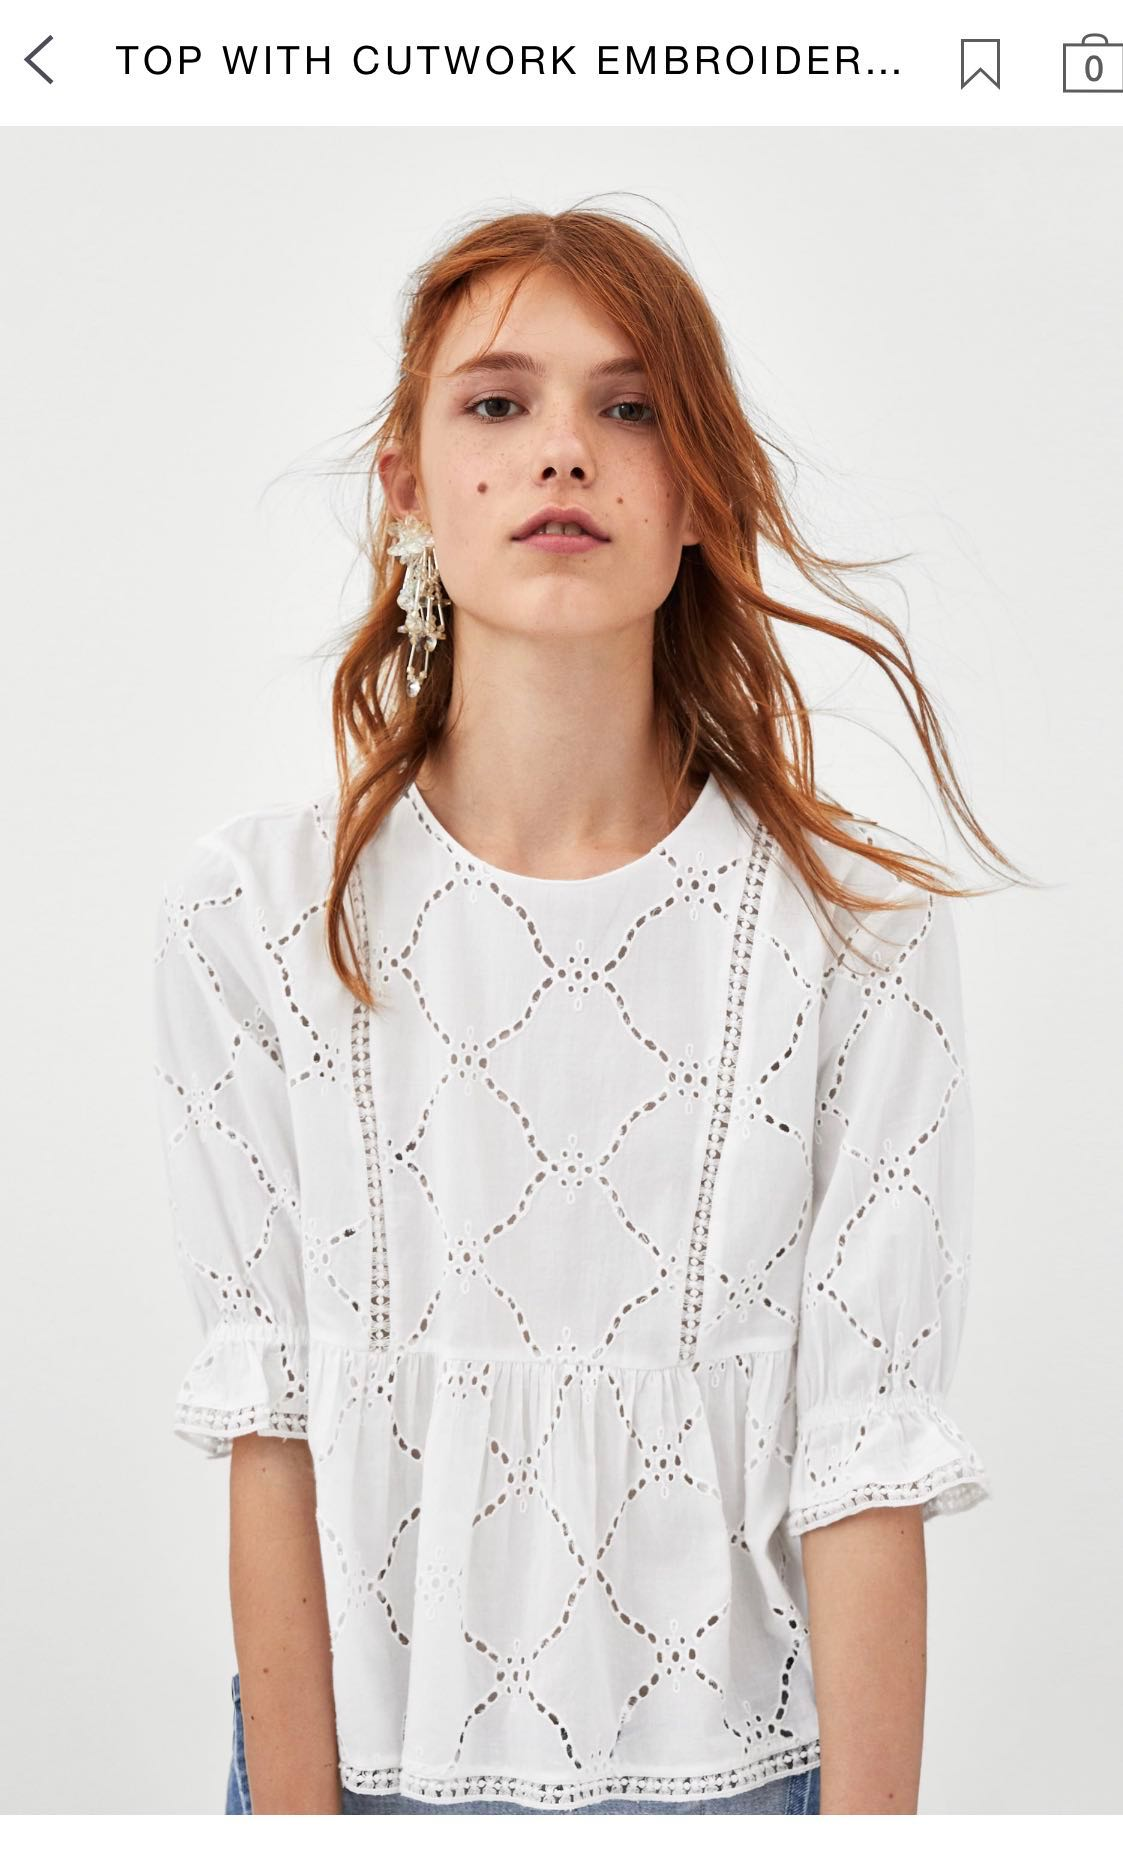 7d87155d0a4ef Zara Top with Cutwork Embroidery and Ruffles Eyelet